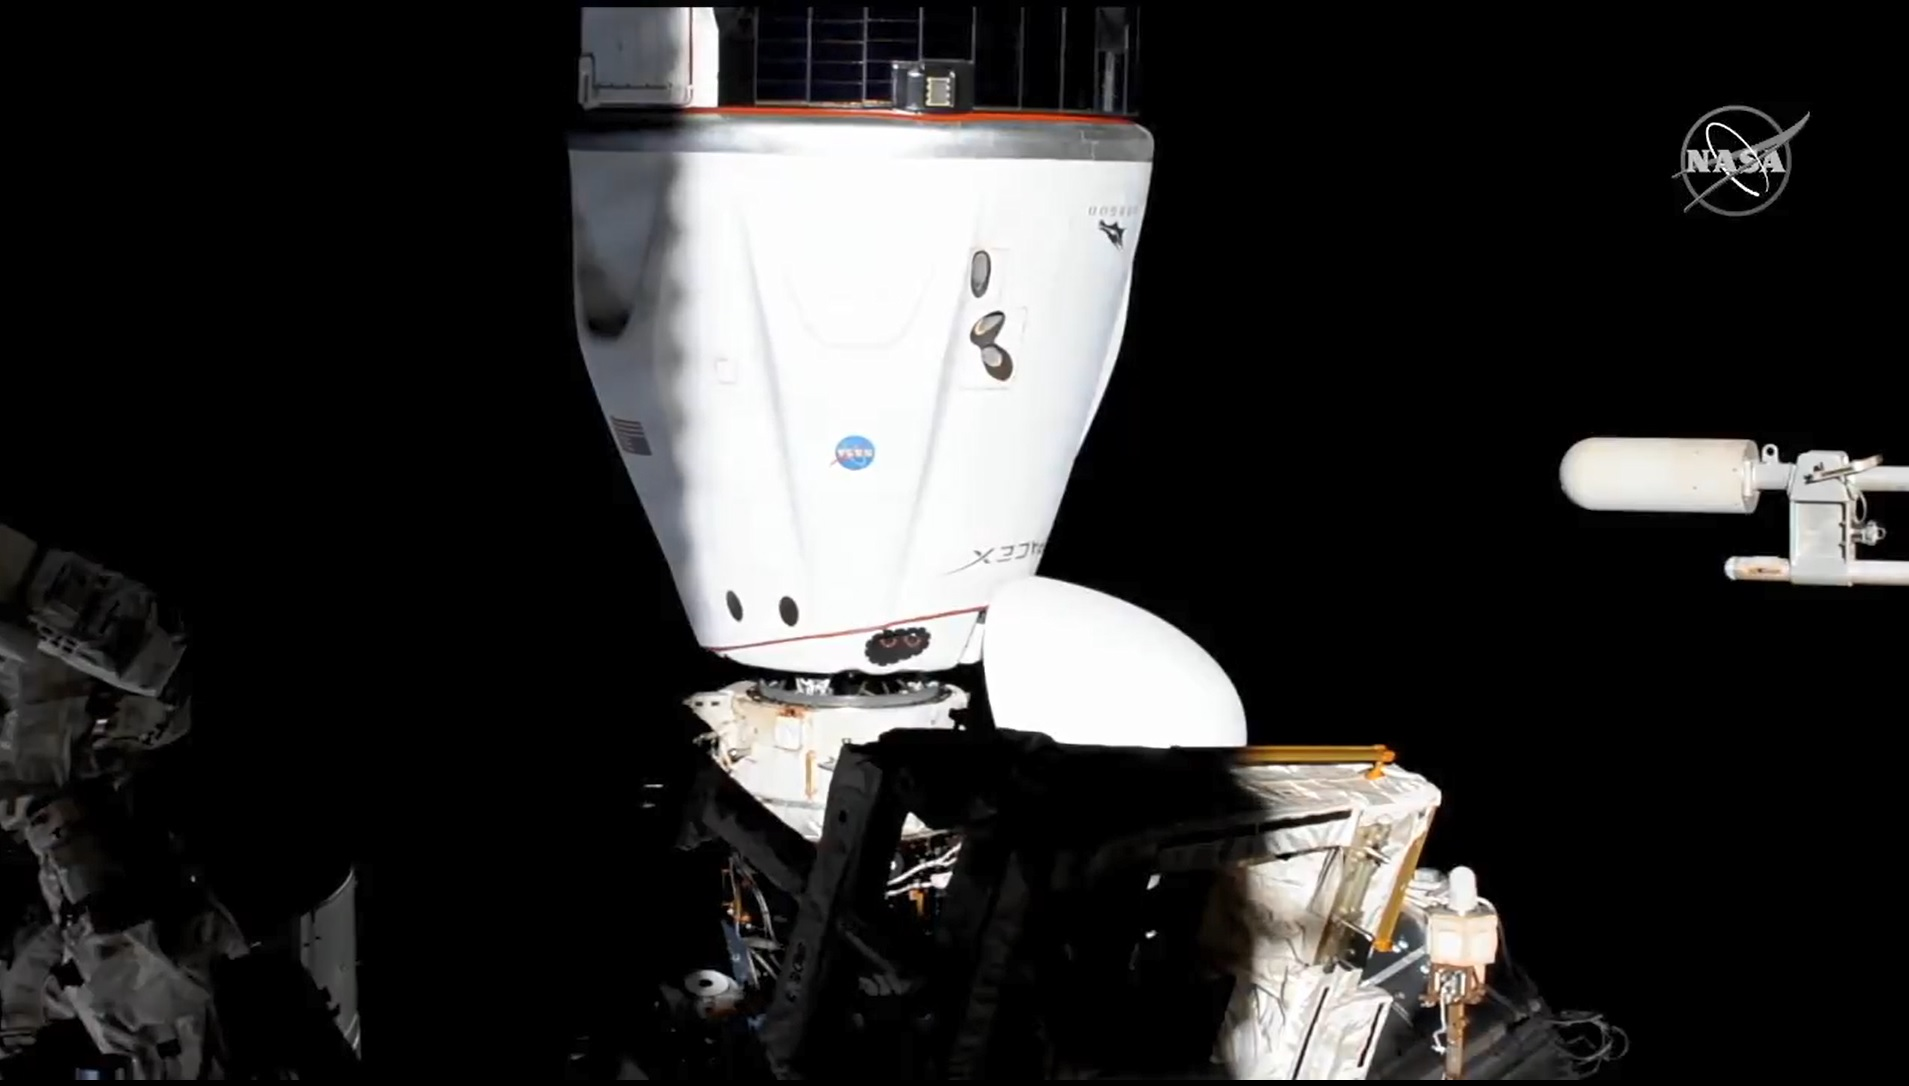 The SpaceX Crew-2 Dragon is pictured after maneuvering to the Harmony module's space-facing international docking adapter.